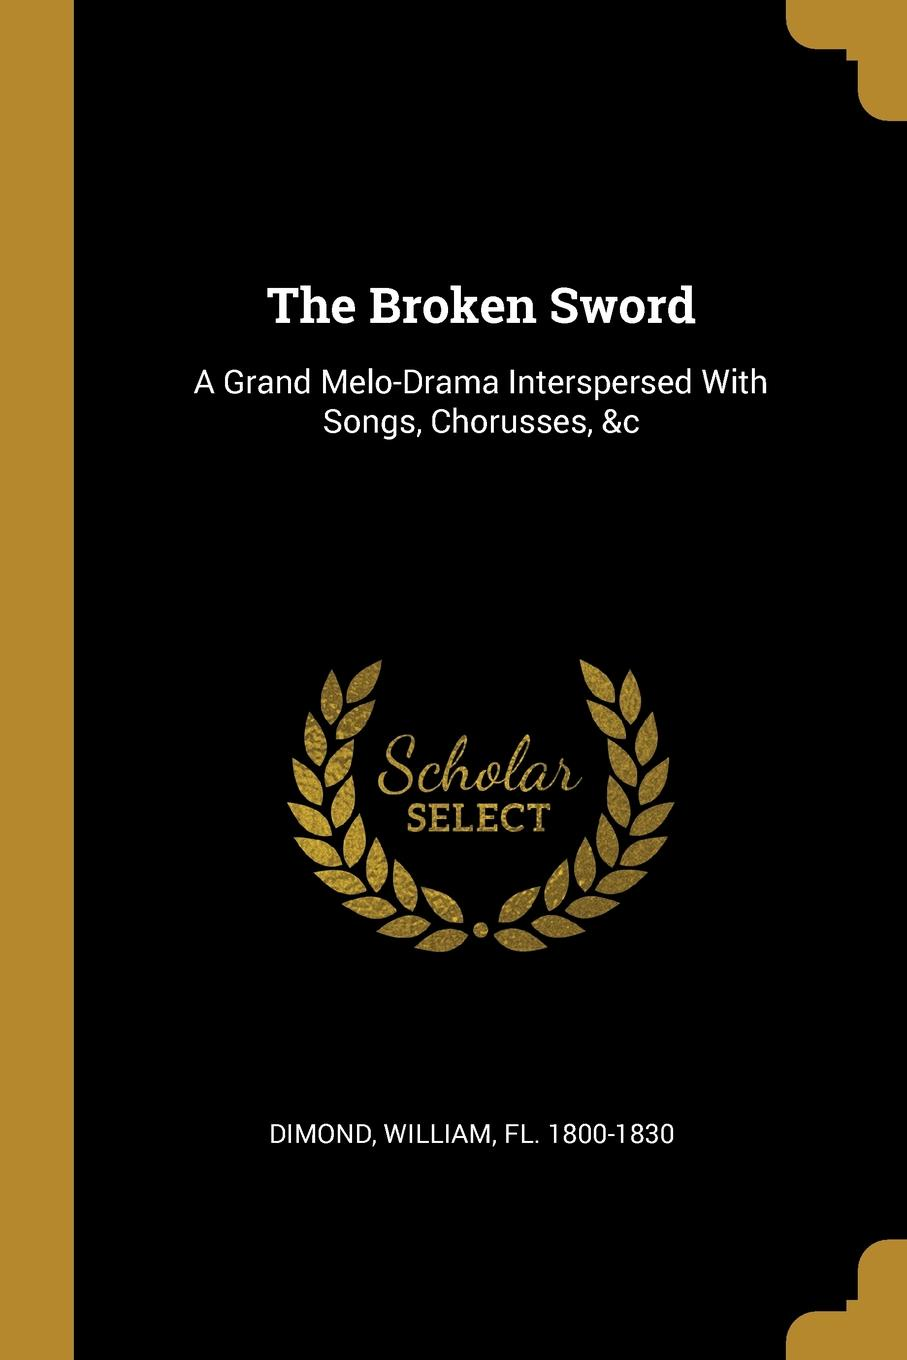 fl. 1800-1830 Dimond William. The Broken Sword. A Grand Melo-Drama Interspersed With Songs, Chorusses, .c